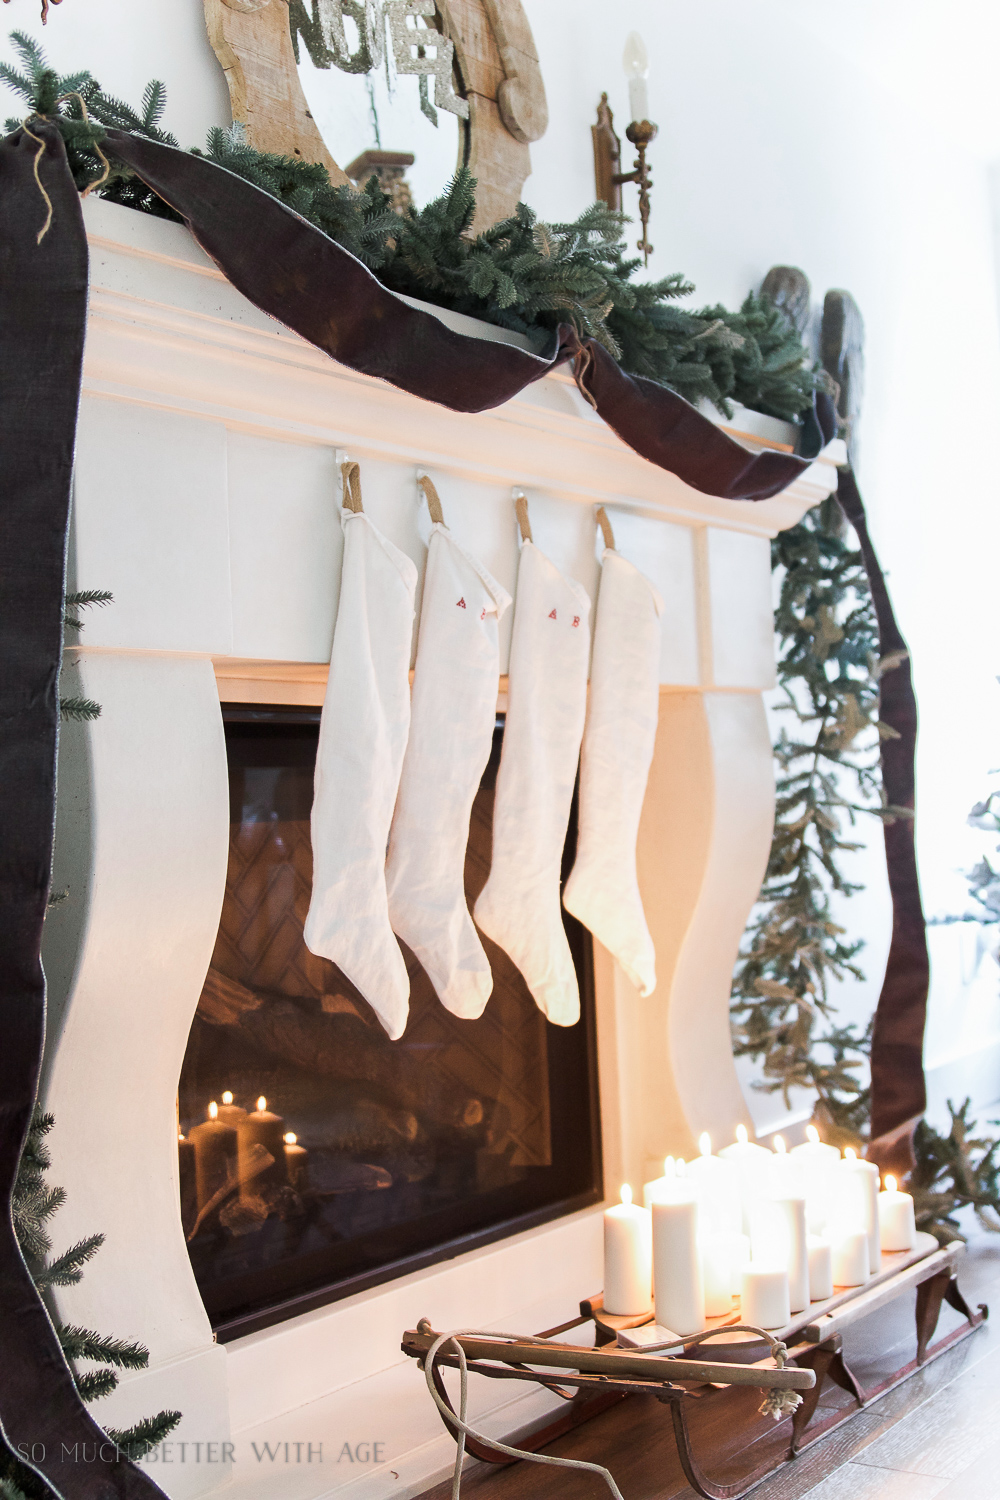 European-looking vintage Christmas stockings sewing tutorial and free downloadable pattern / stockings hanging on the mantel - So Much Better With Age